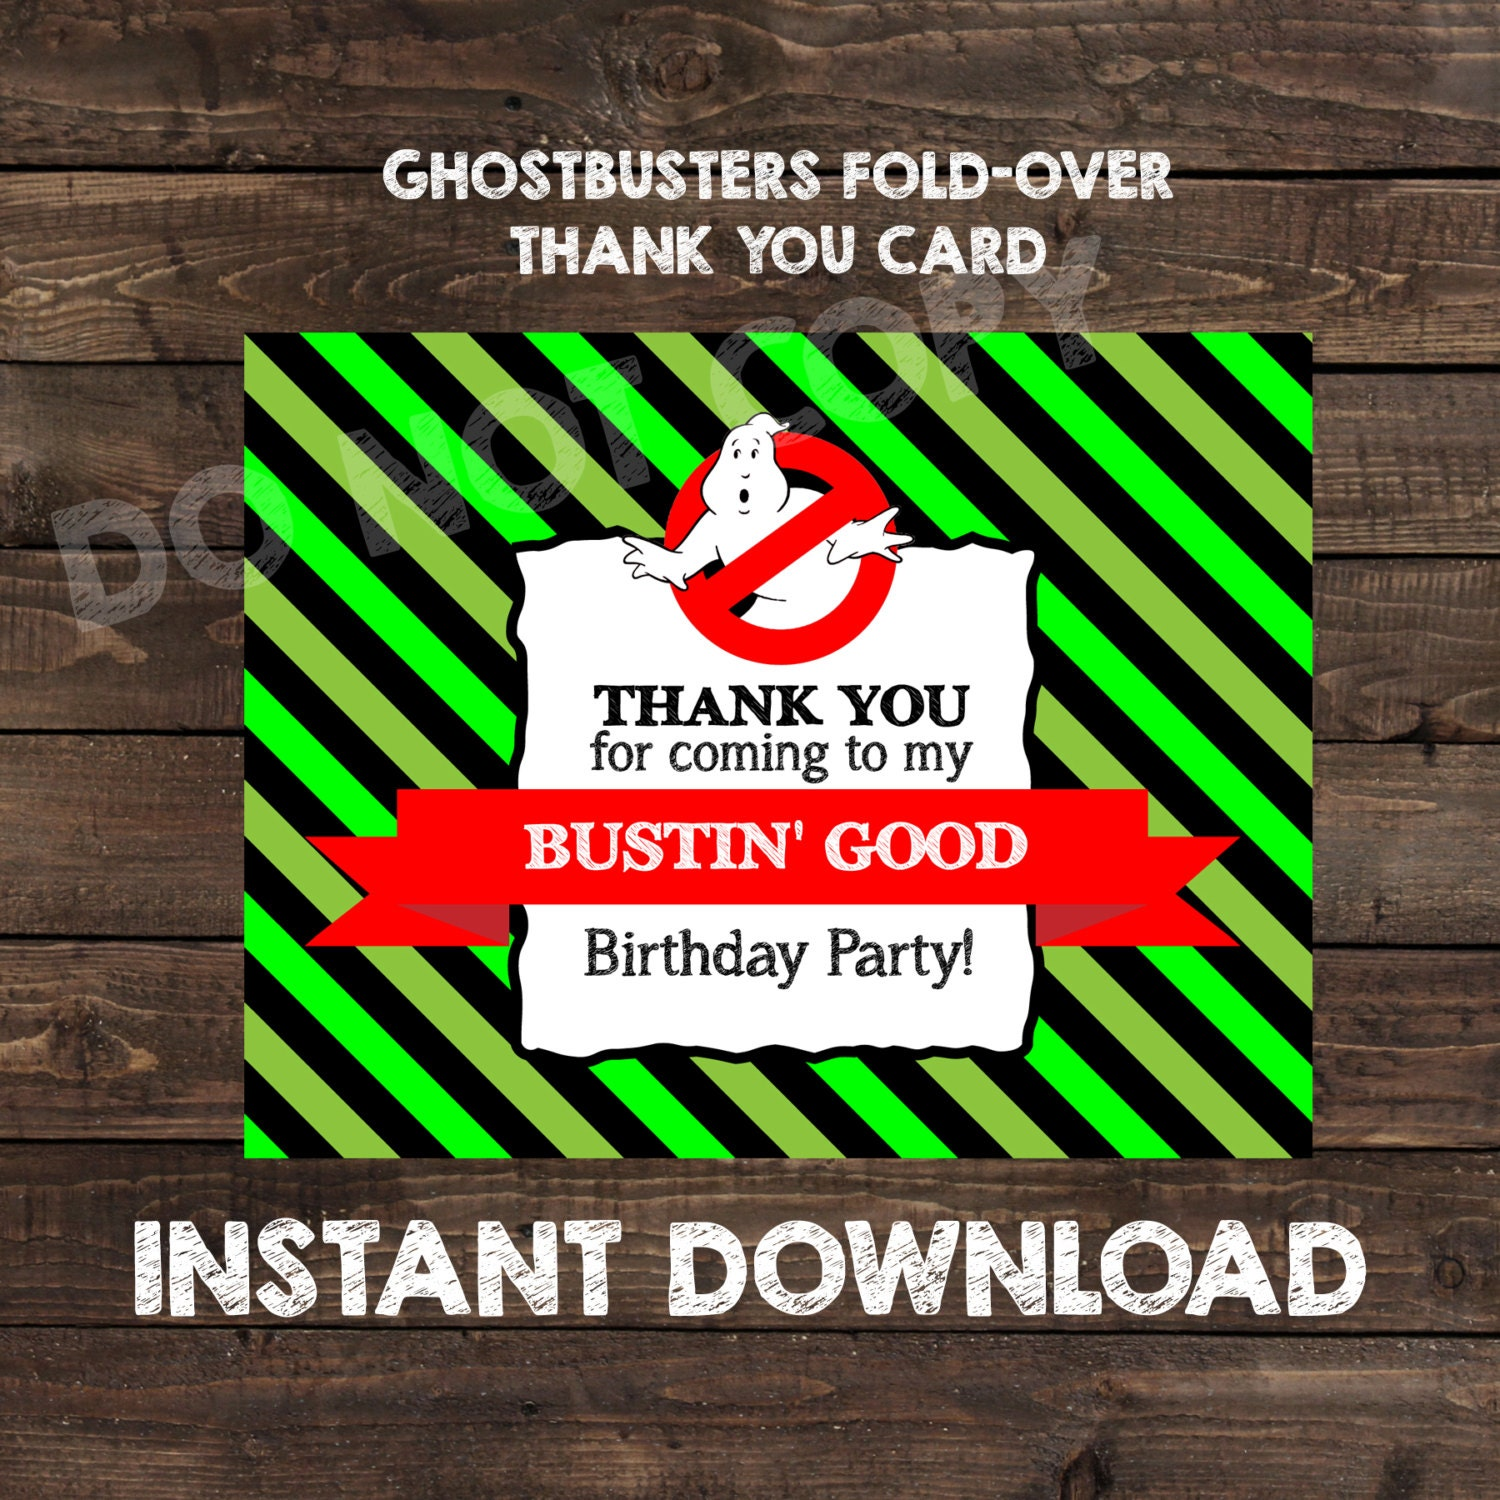 Instant Download Ghostbusters Birthday Party Theme Fold Over